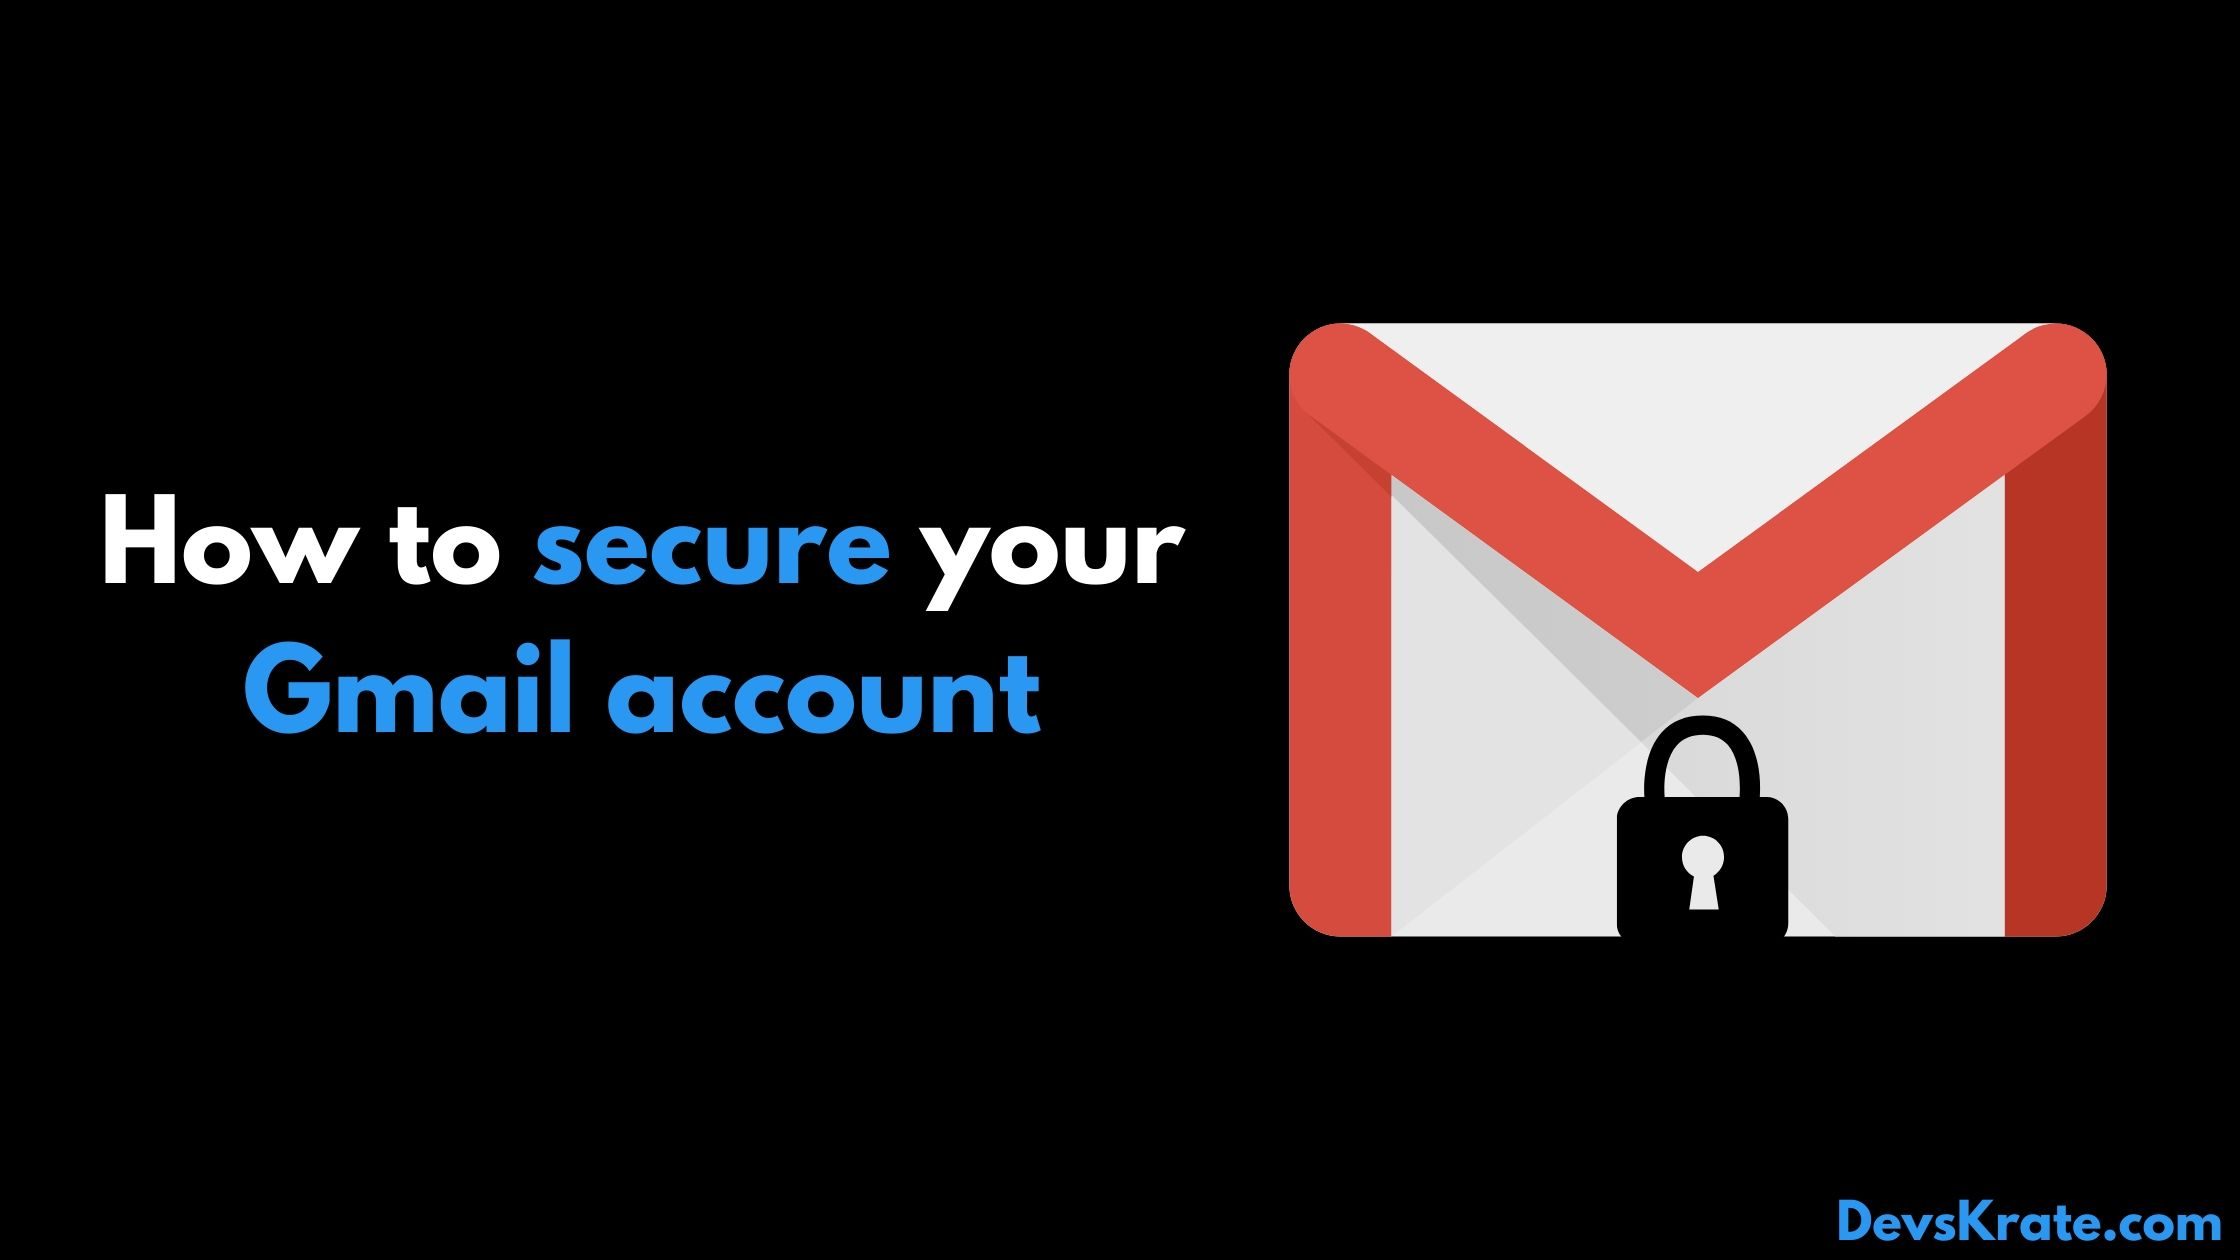 4 steps you should take to secure your Gmail account